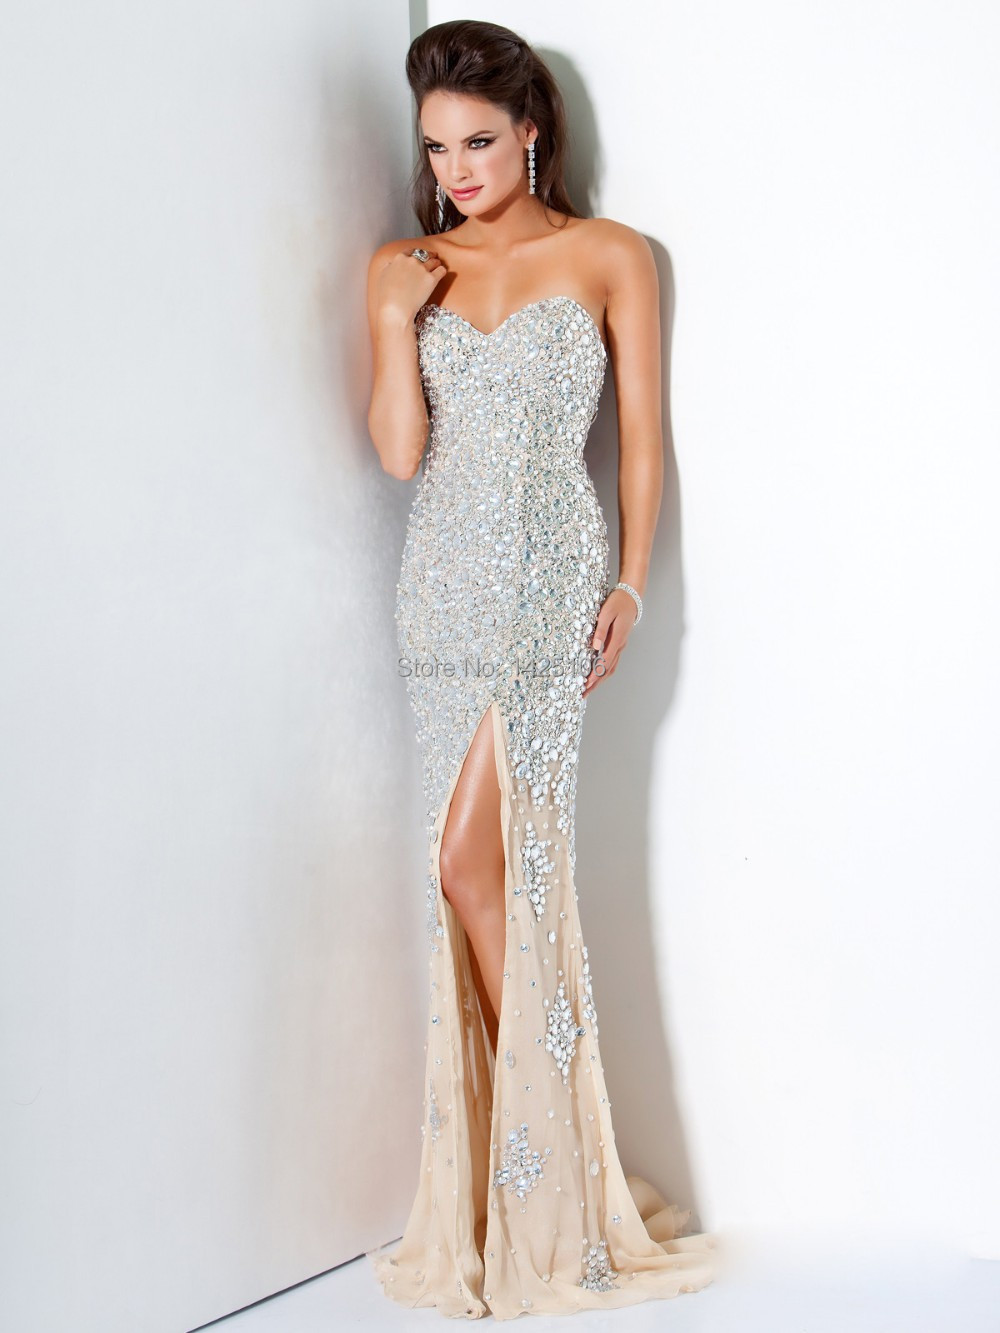 Prom Dresses in Lubbock TX_Other dresses_dressesss